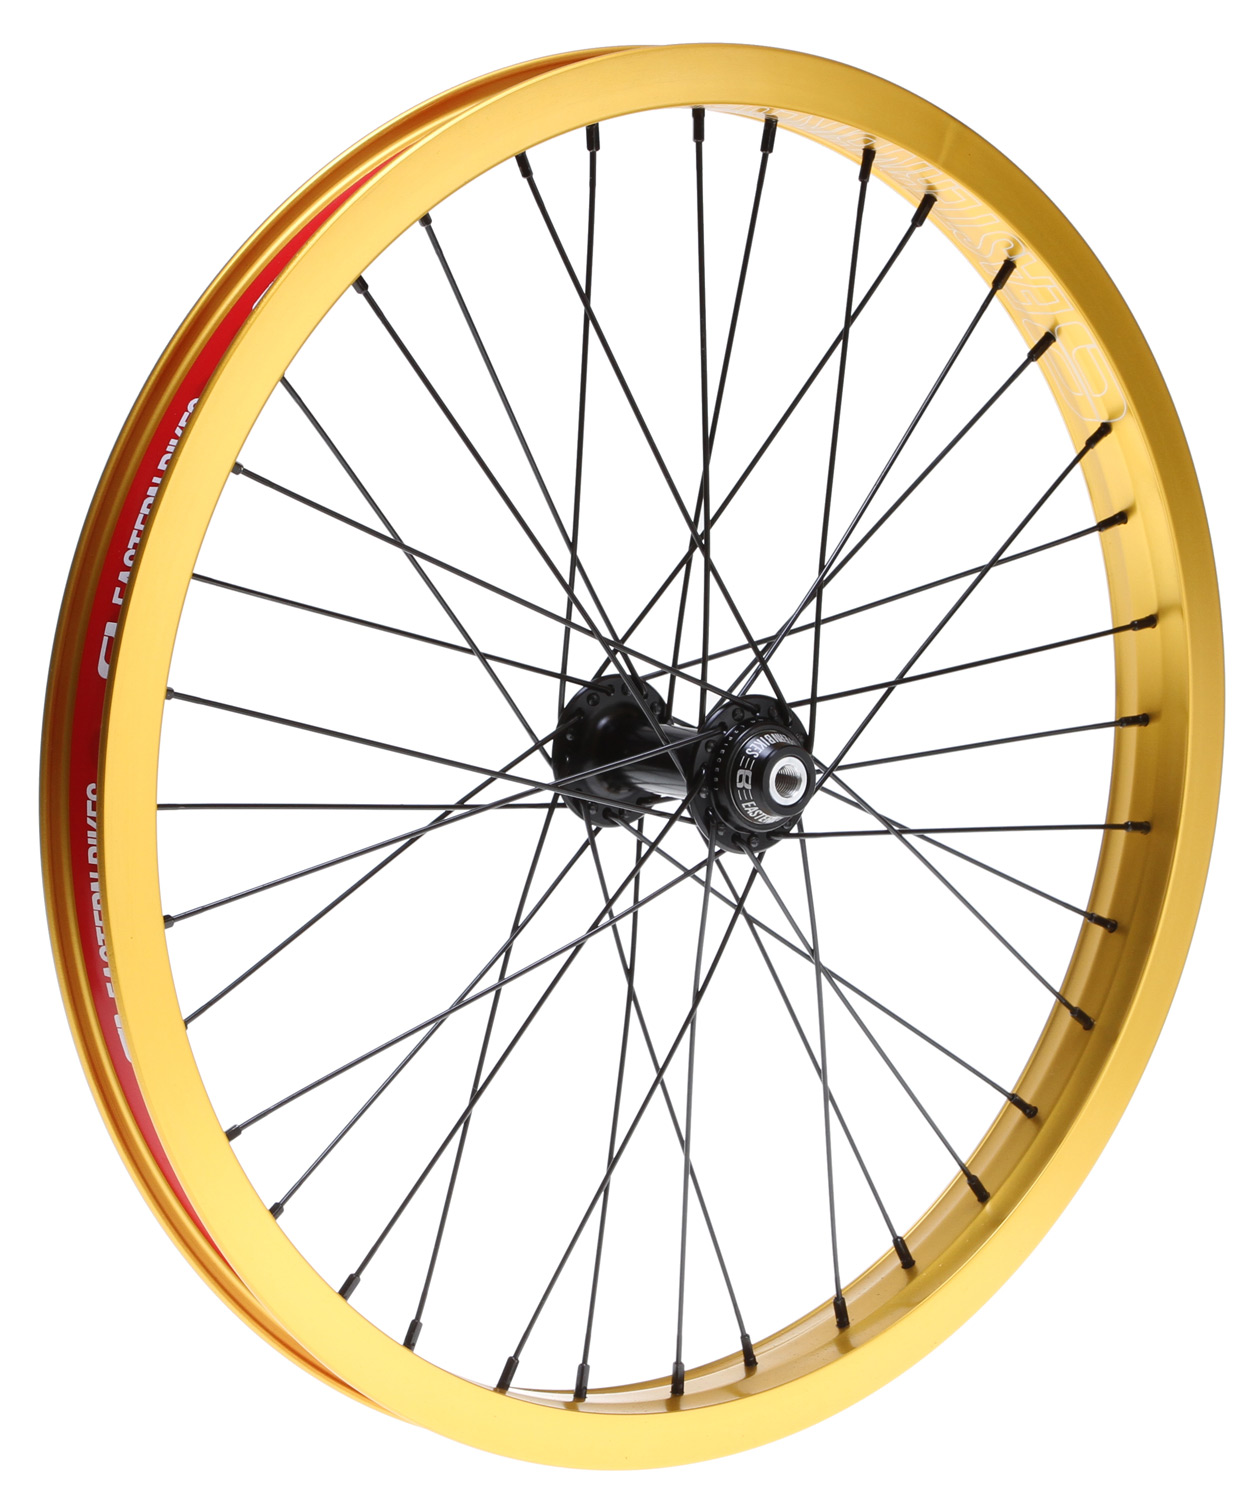 "Fitness Smooth rolling hubs, strong double-walled rims, female axles, hub guard included. Key Features of the Eastern Venus Front 36H BMX Wheel Gold 20"":  6061 Forged then CNCed machined hub body  7075 alloy female axle, heat treated chomoly bolts  Precision sealed bearings  Polymer CNCed hub guard included  7075 T6 Alloy Diode Rim  Fusion welded for a better seem  Double-wall 36 hole  Colors: Matte Black, Matte Red, Matte Blue, Matte Platinum, Matte Purple, Matte Hot Blue or Matte Gold  Weight: 31.7 ounces - $99.95"